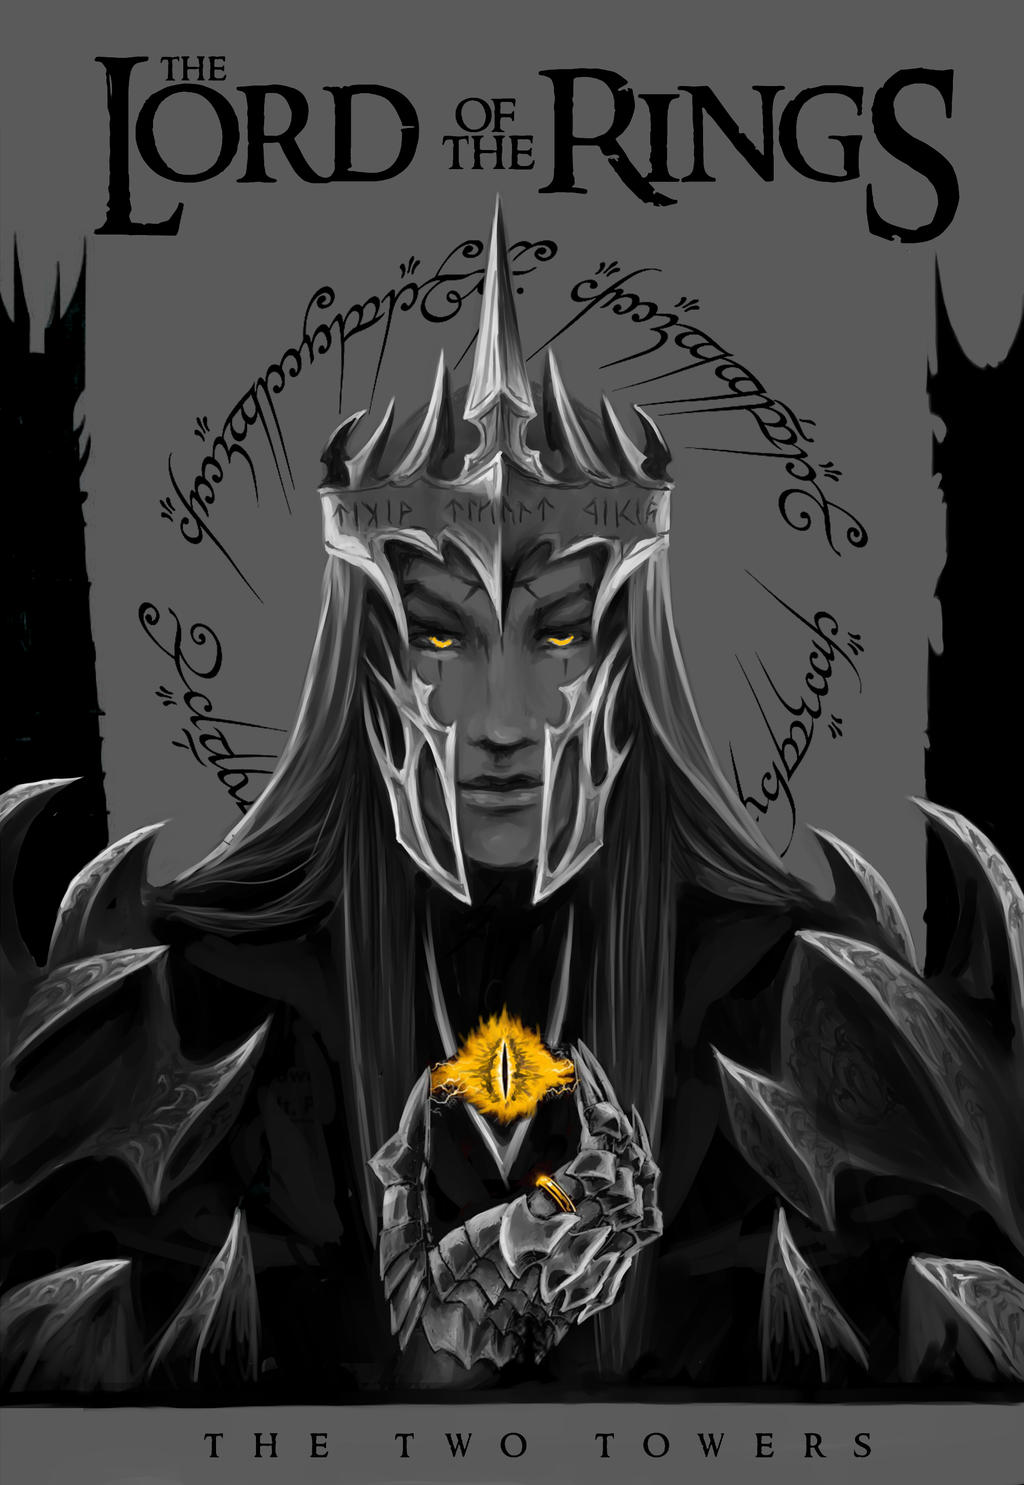 Lotr Book Cover Art ~ The dark lord lotr book cover by alef on deviantart